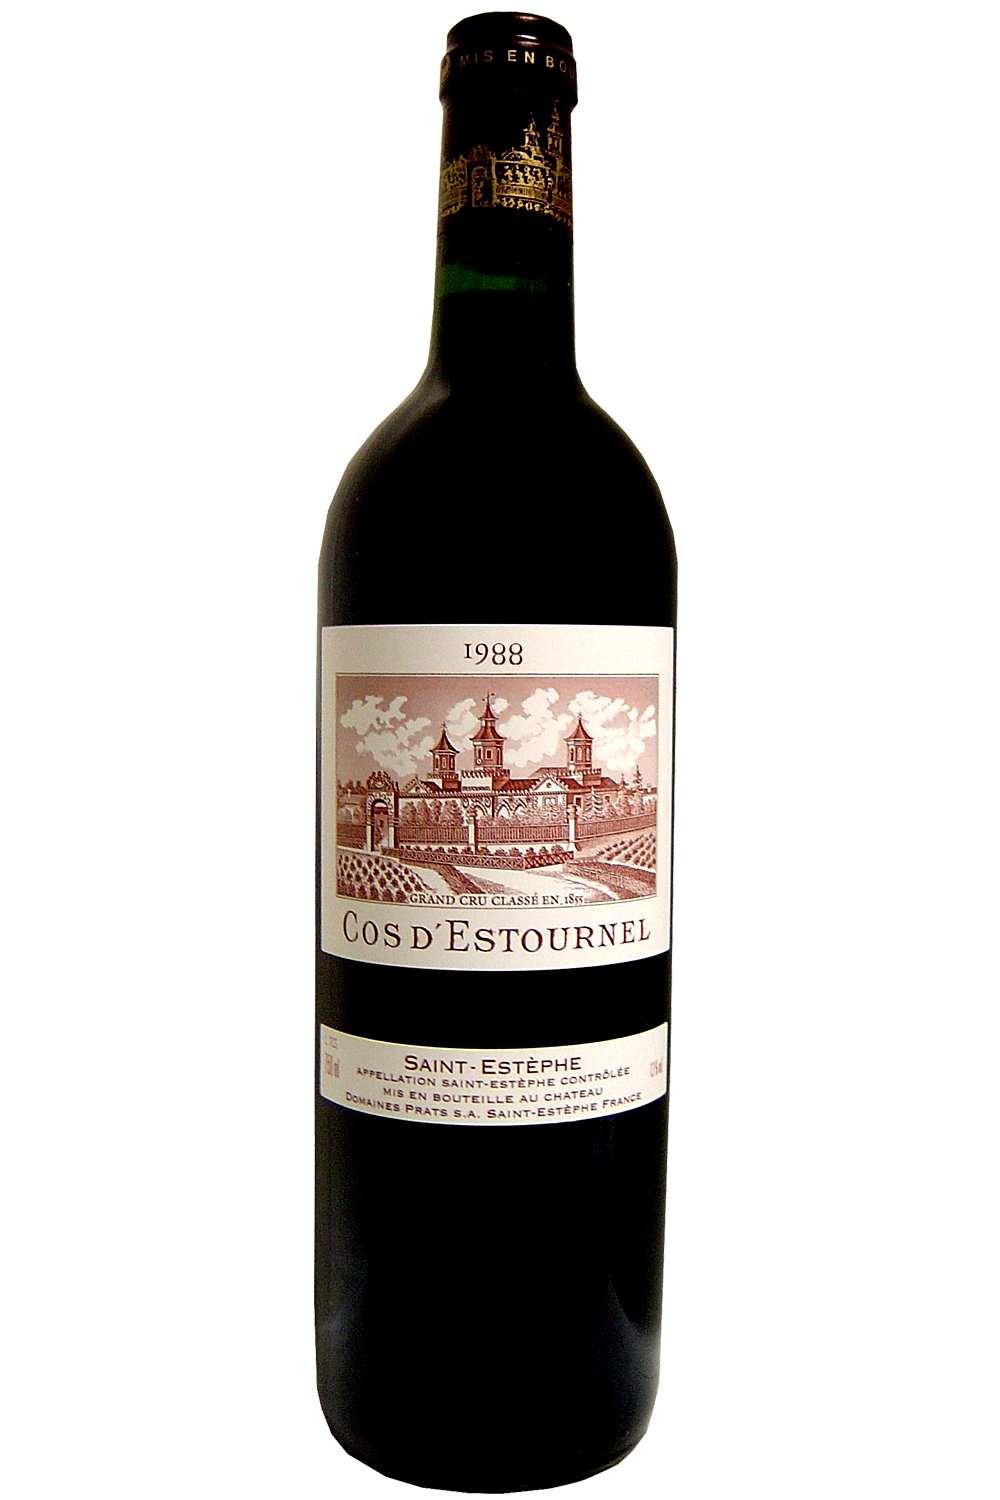 1988 Cos D'Estournel Bordeaux Red 750 ml